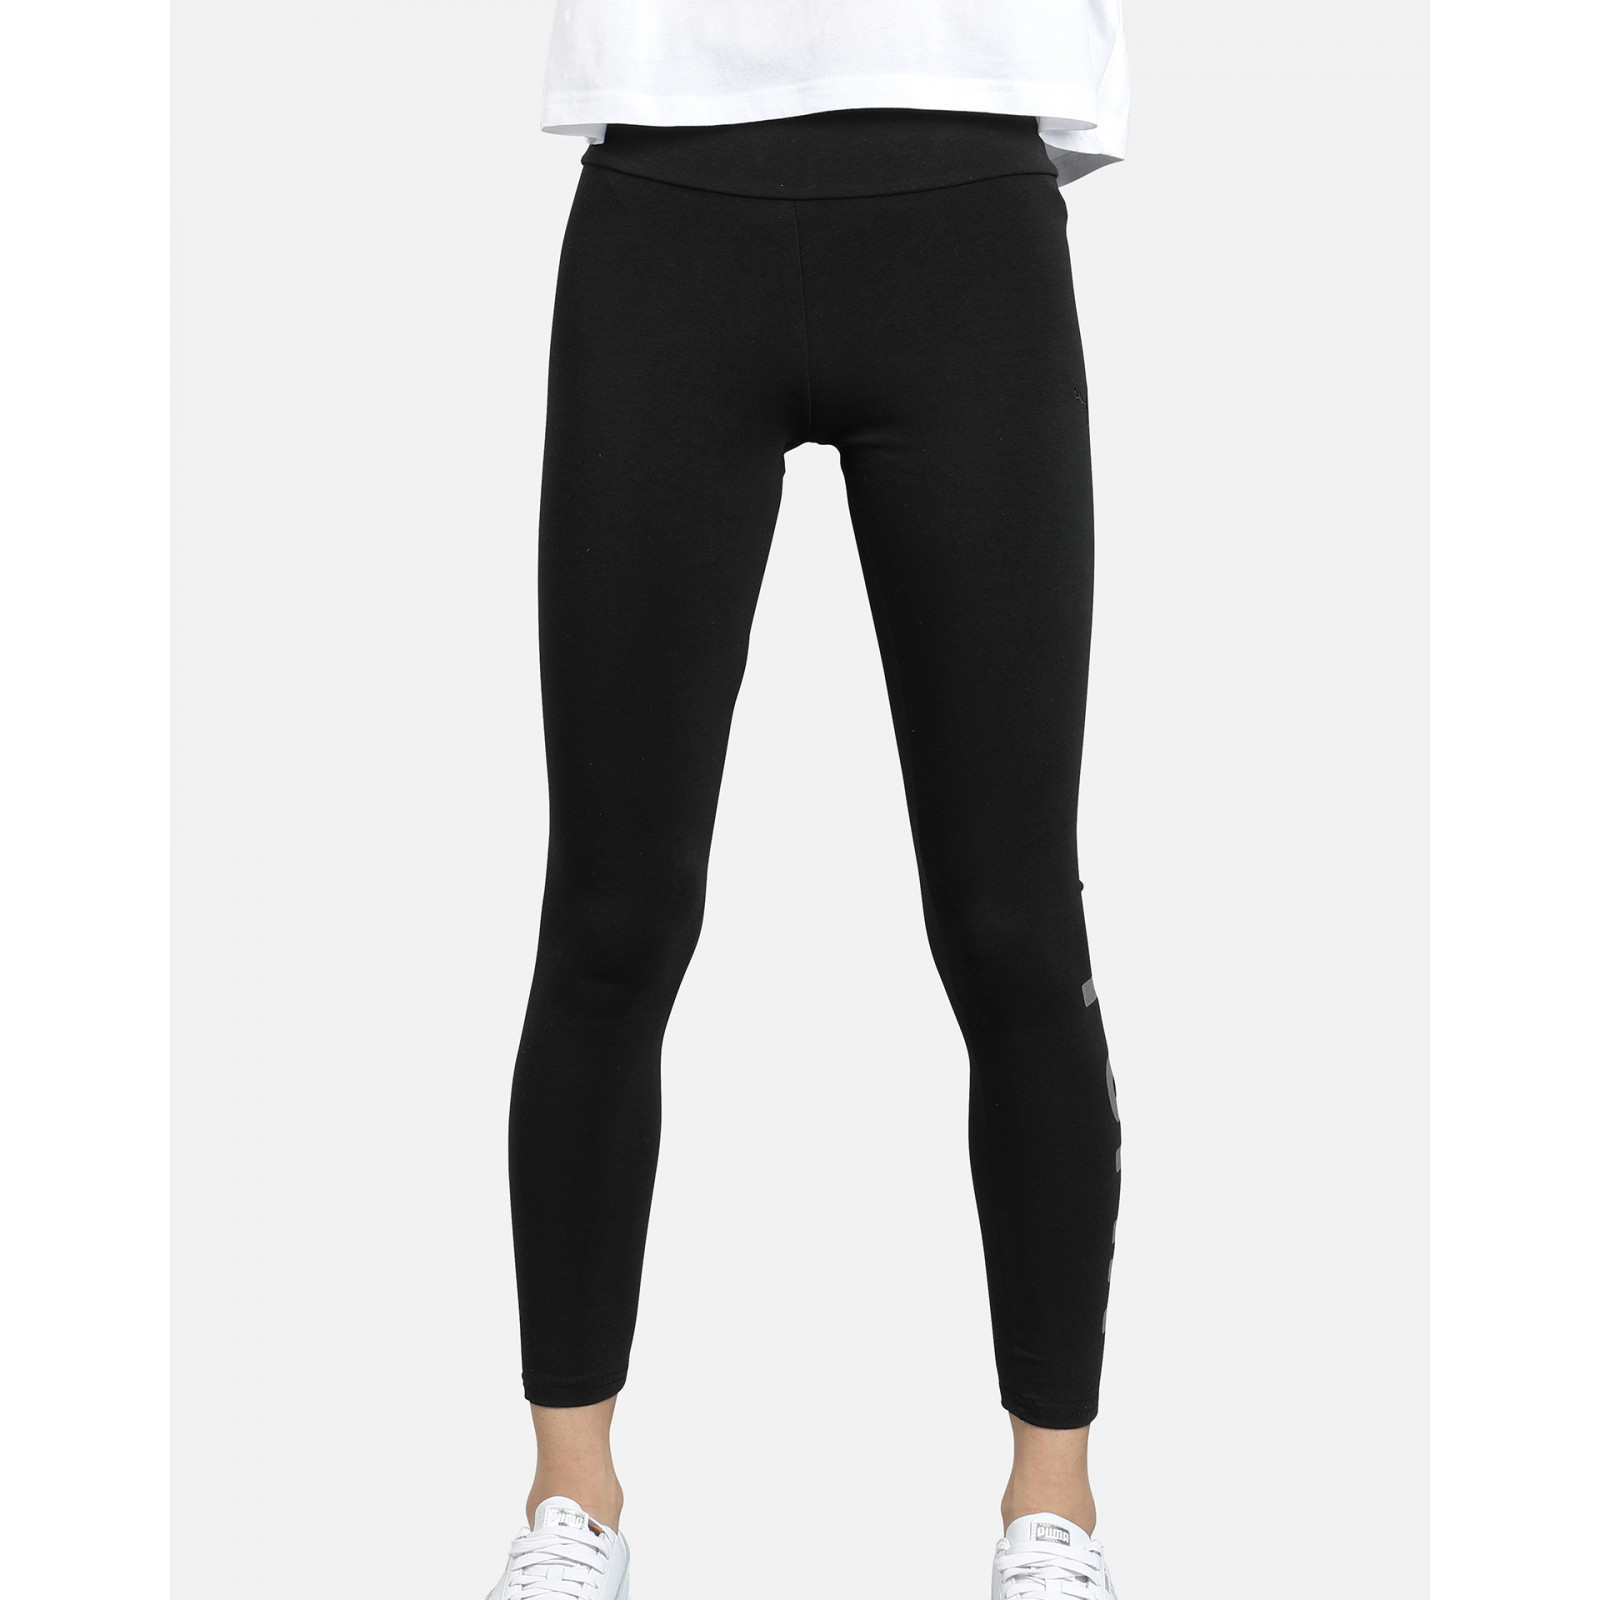 Athletic Leggings puma womenu0027s athletic leggings ... FUTFTZS